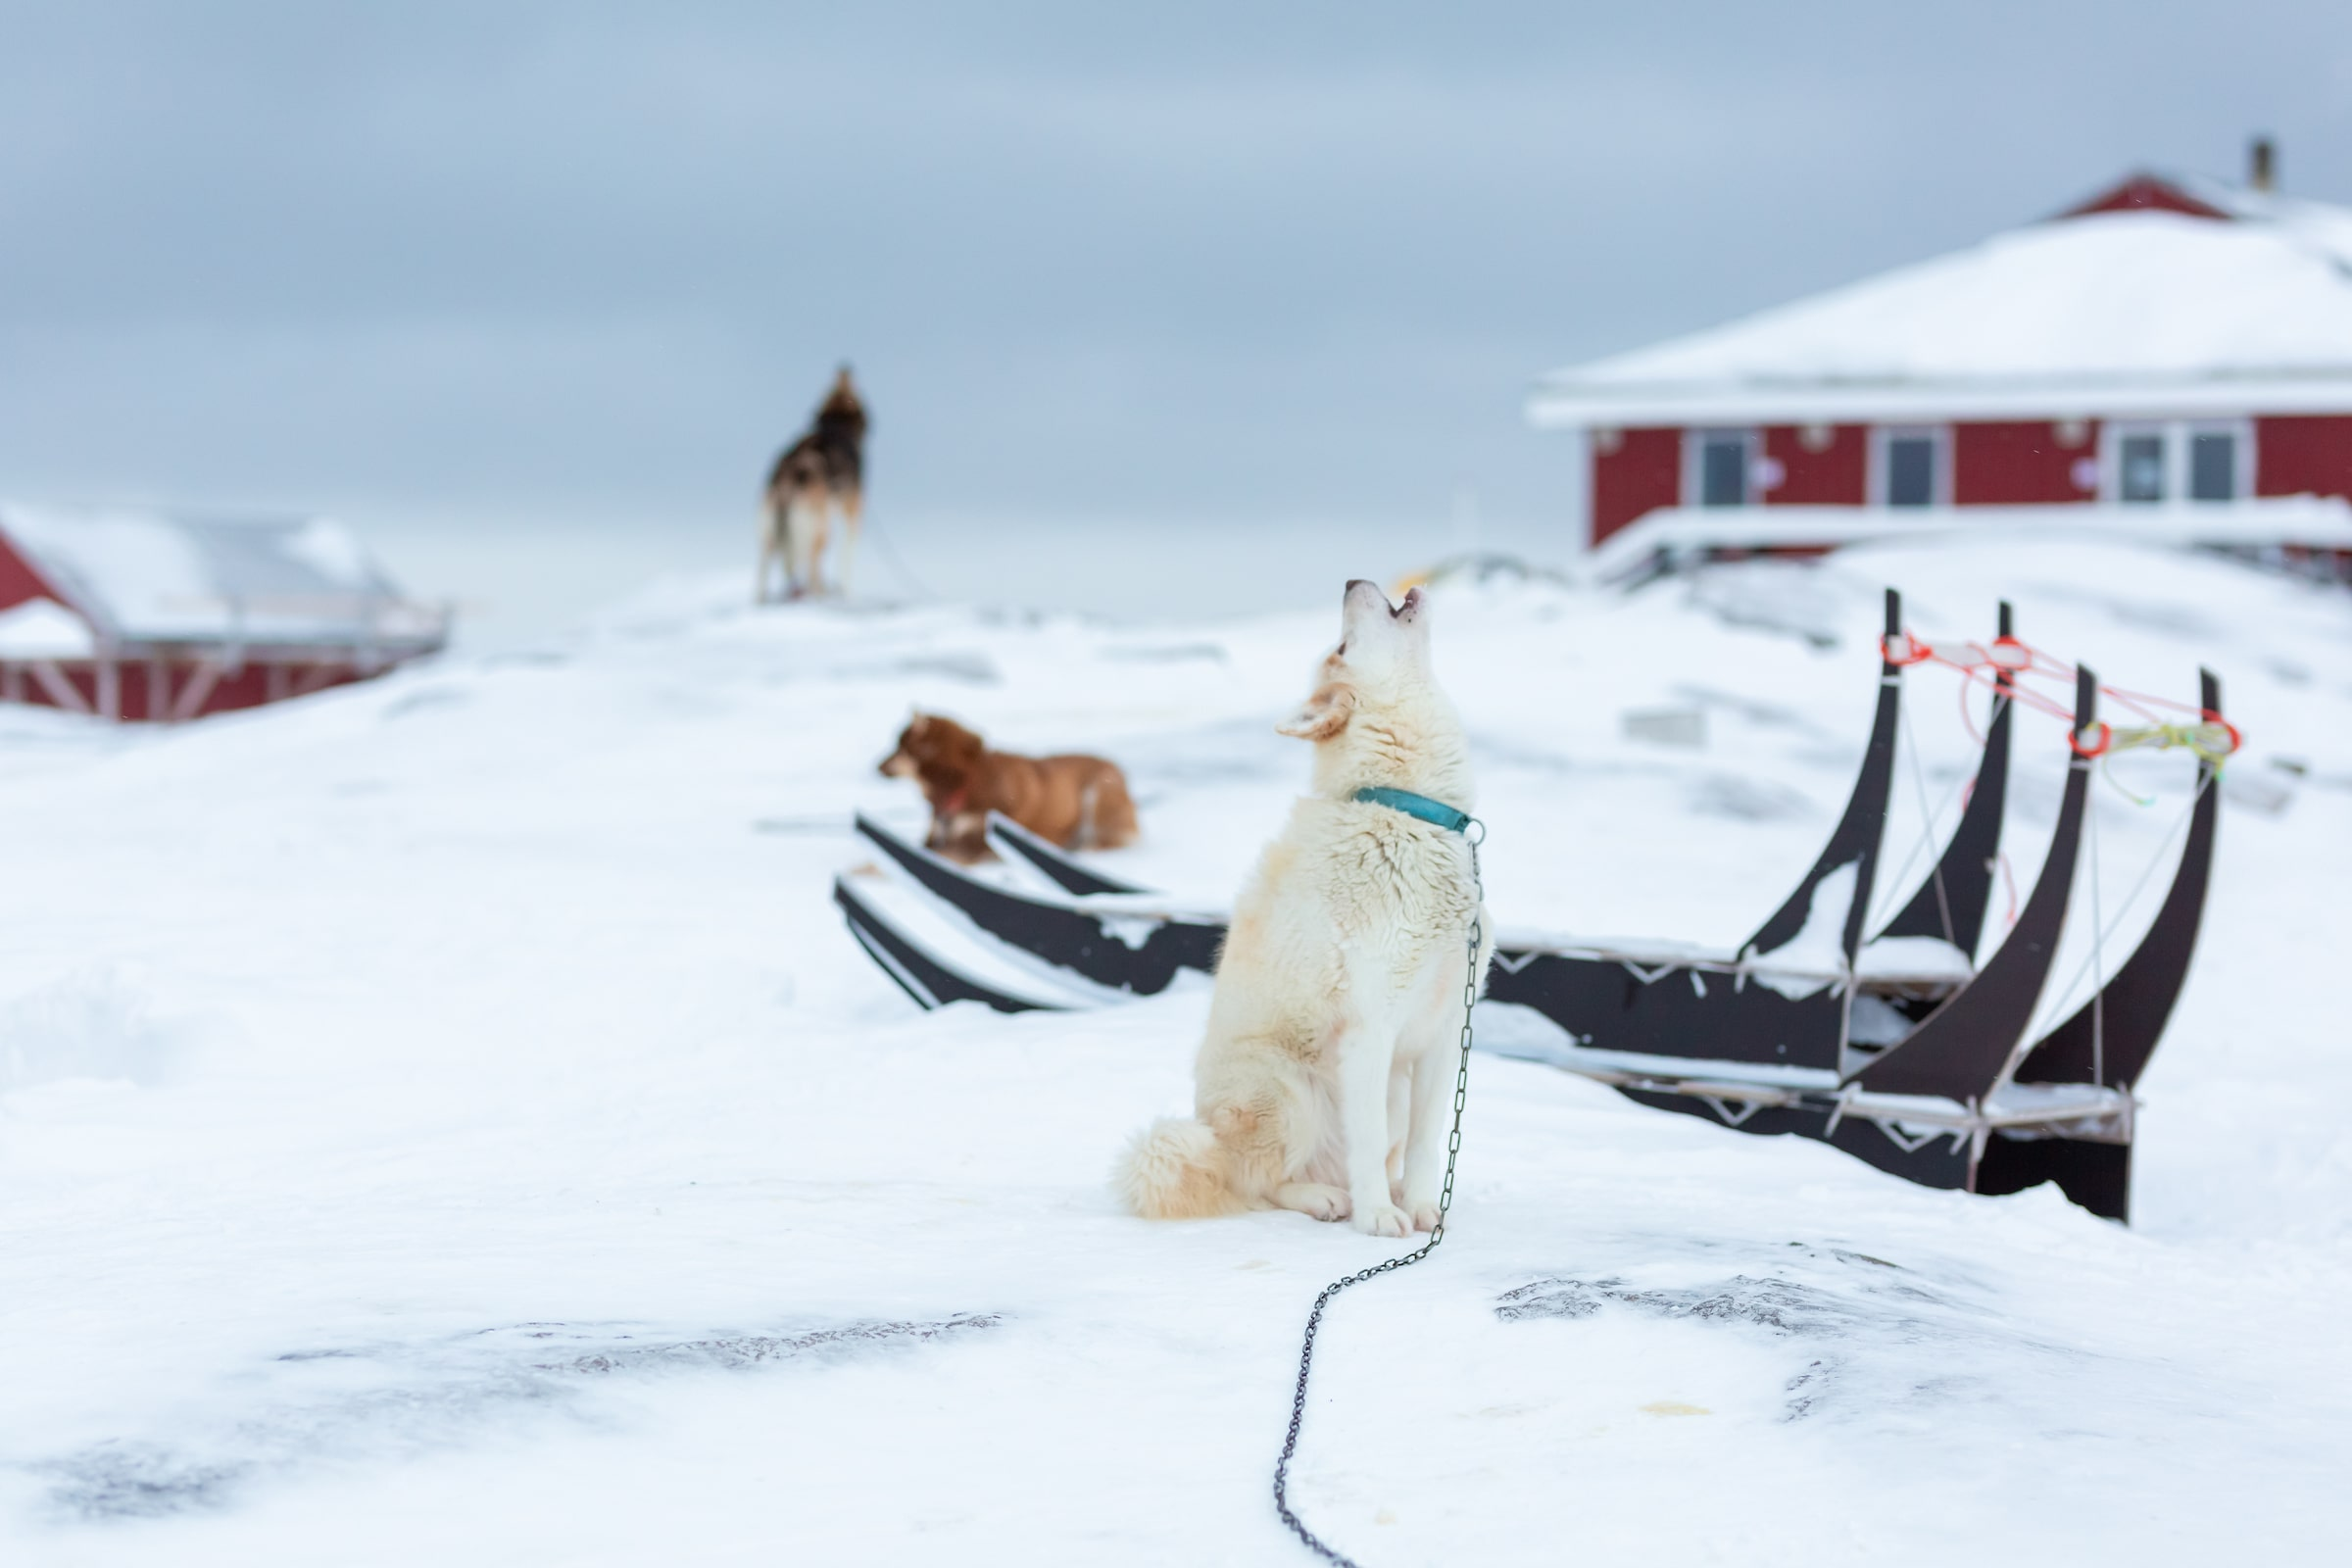 Howling Dog. Photo by Filip Gielda - Visit Greenland